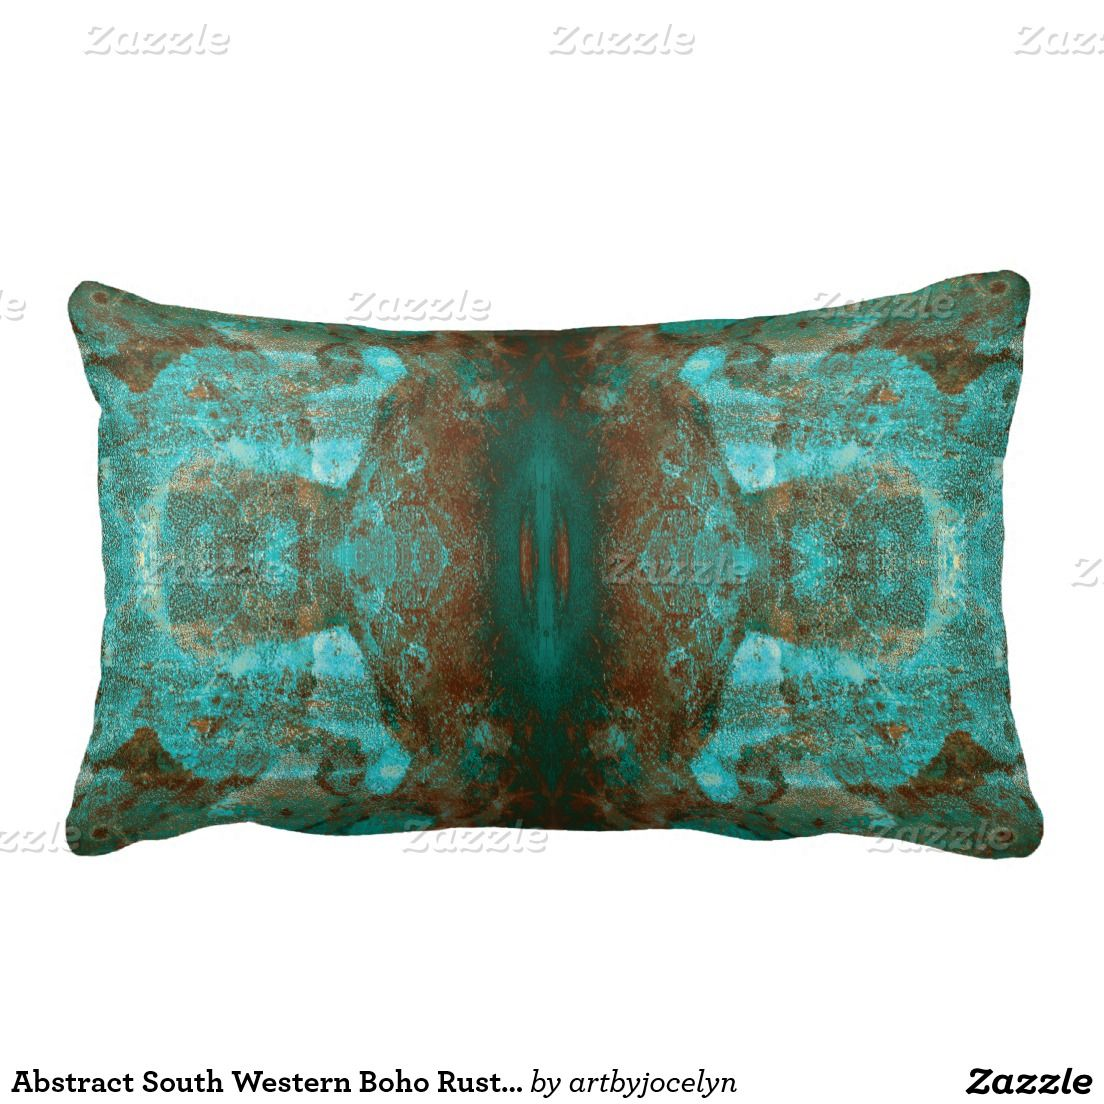 Abstract South Western Boho Rust Teal Mirrored Lumbar Pillow ...